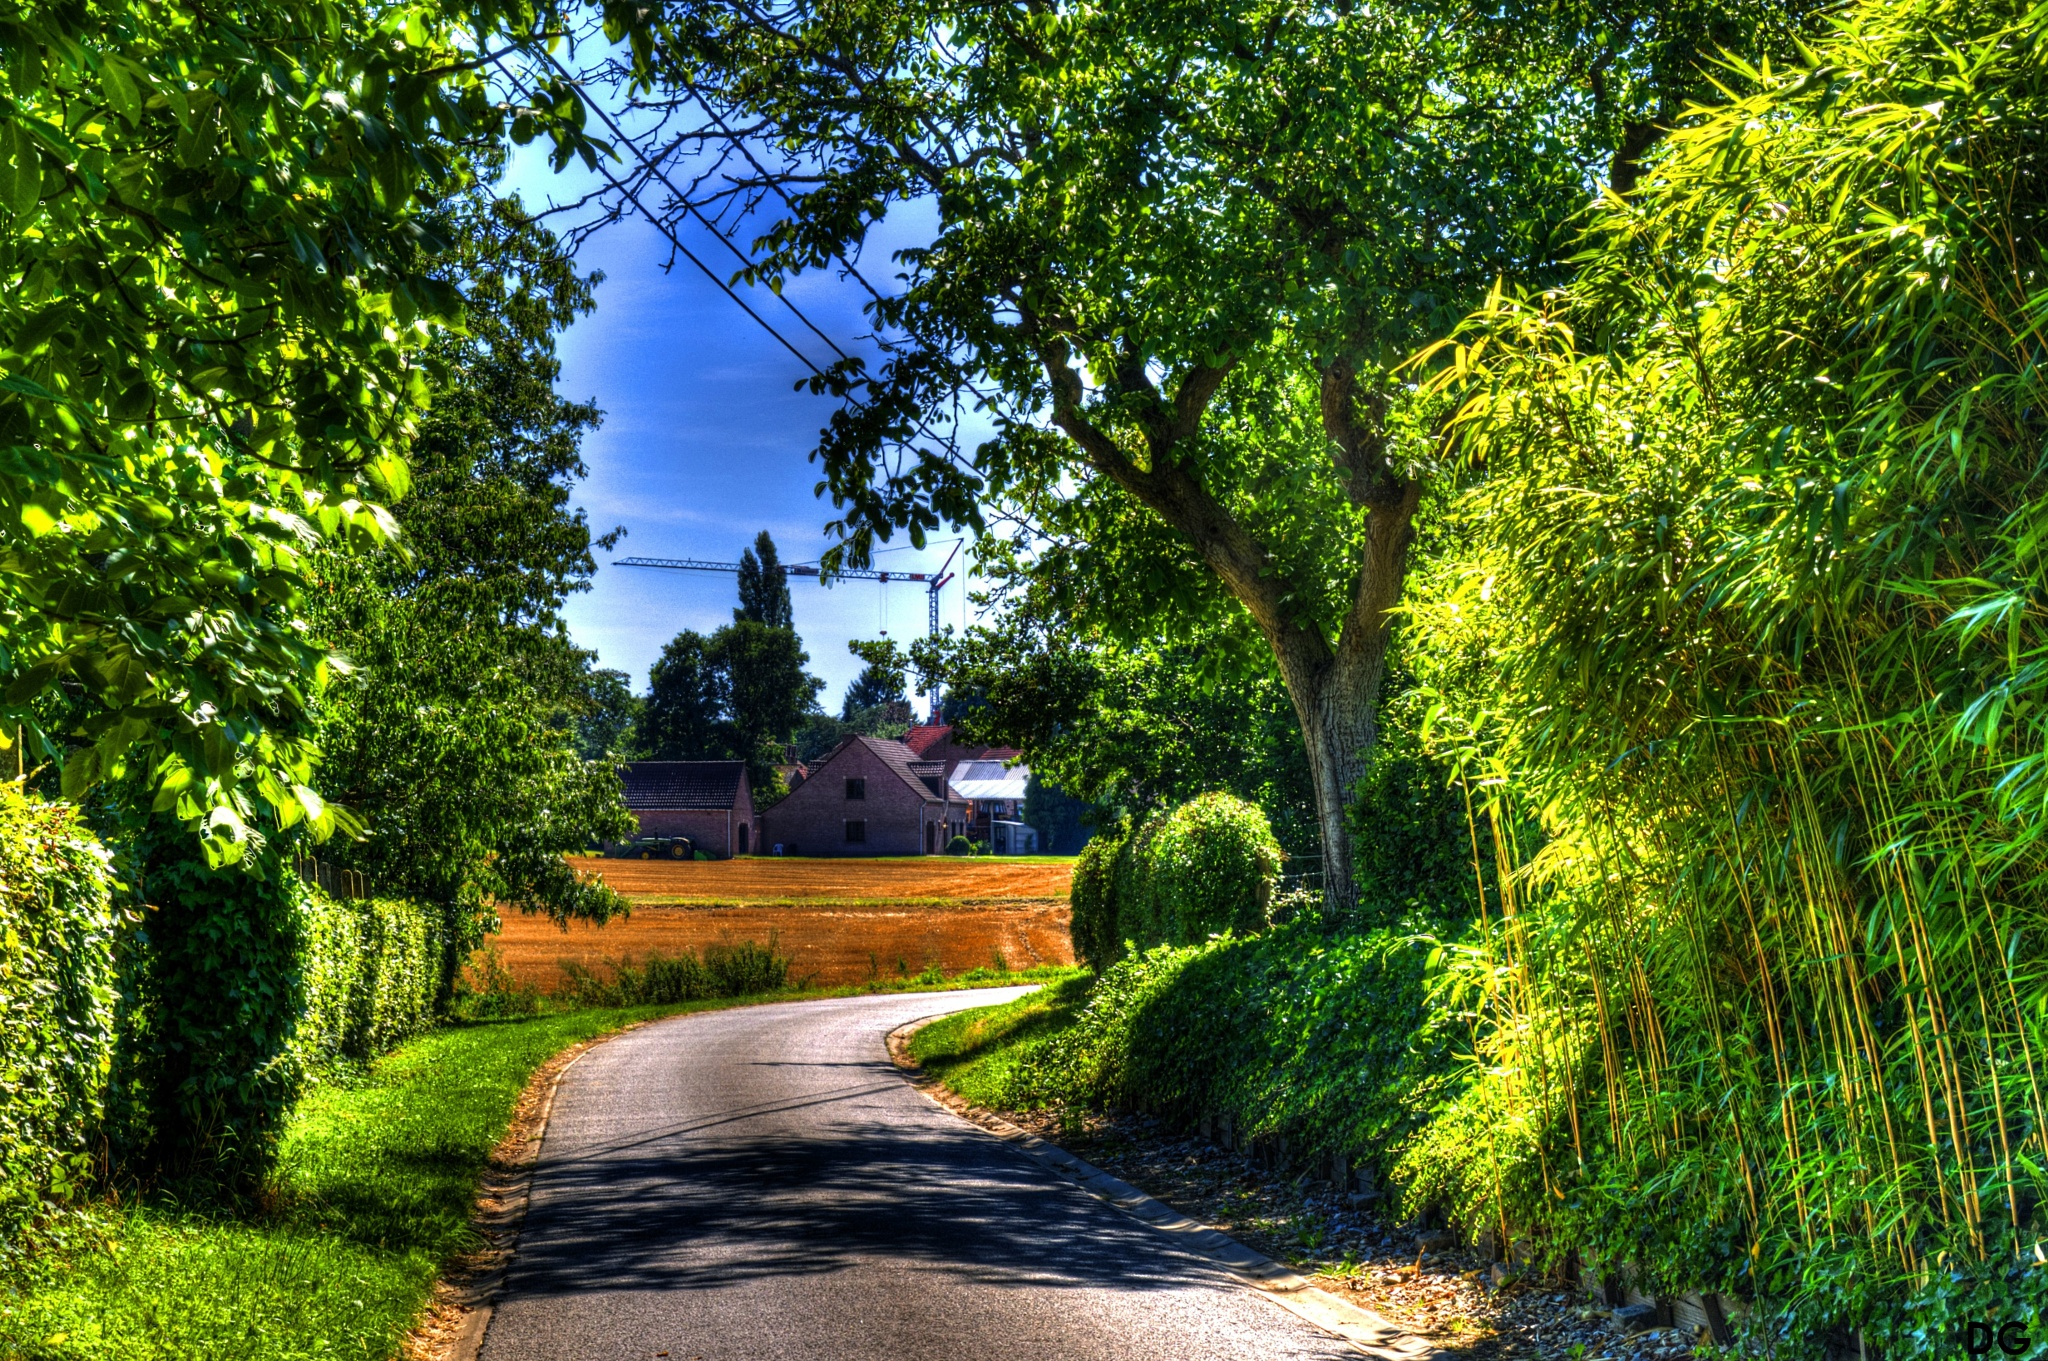 Road VI. by Dirk Gonthier